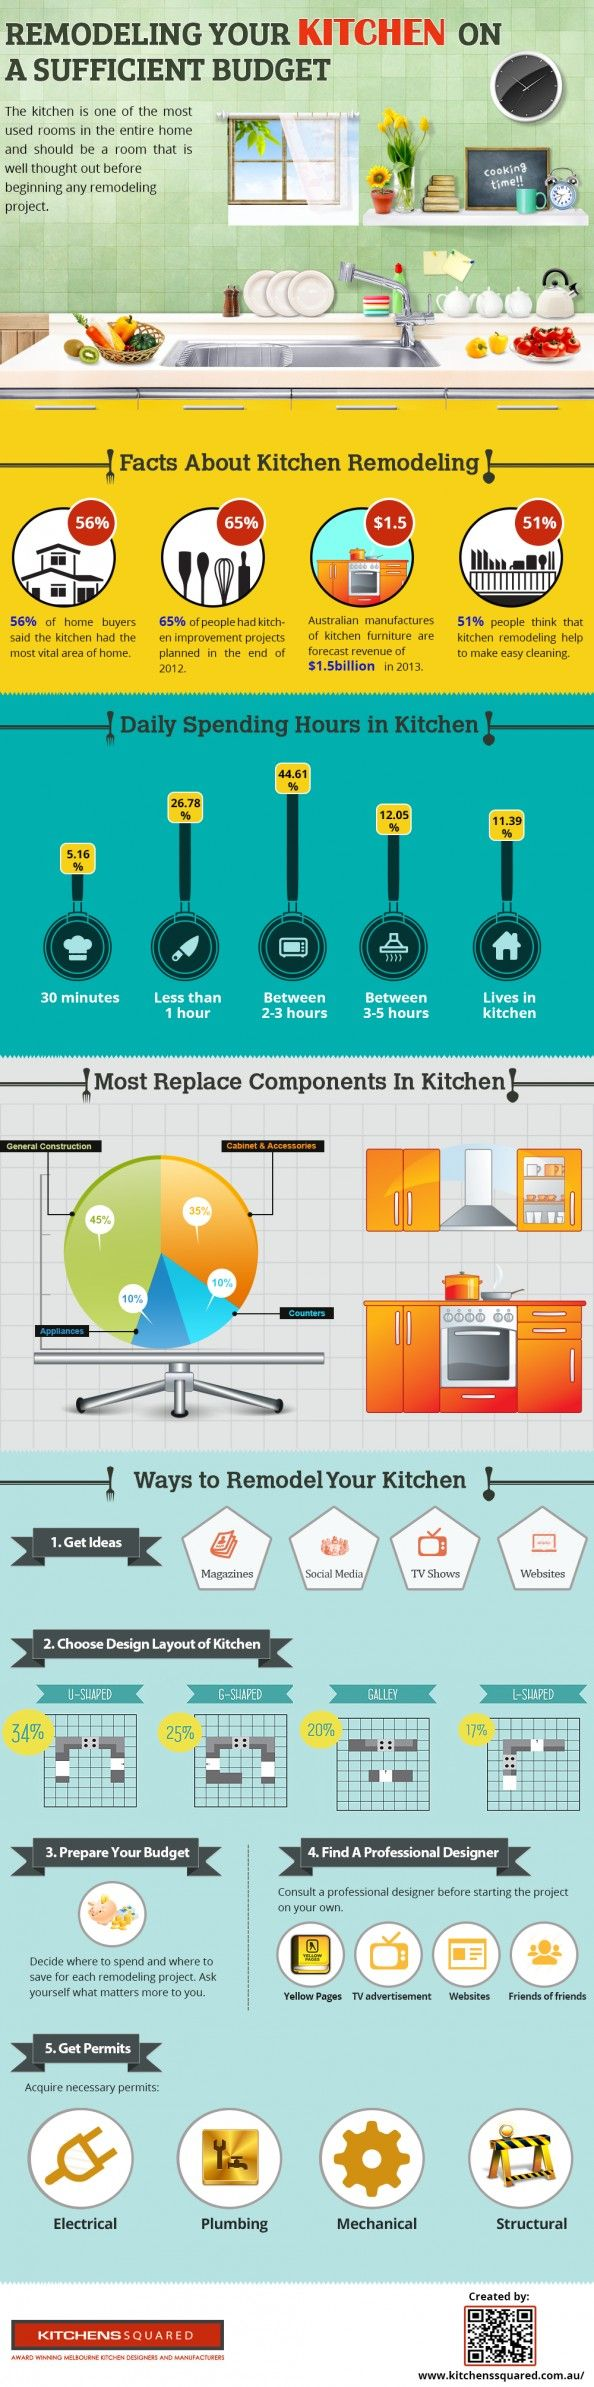 Kitchen Remodeling Business The 41 Best Images About Kitchen Ideas On Pinterest Maple